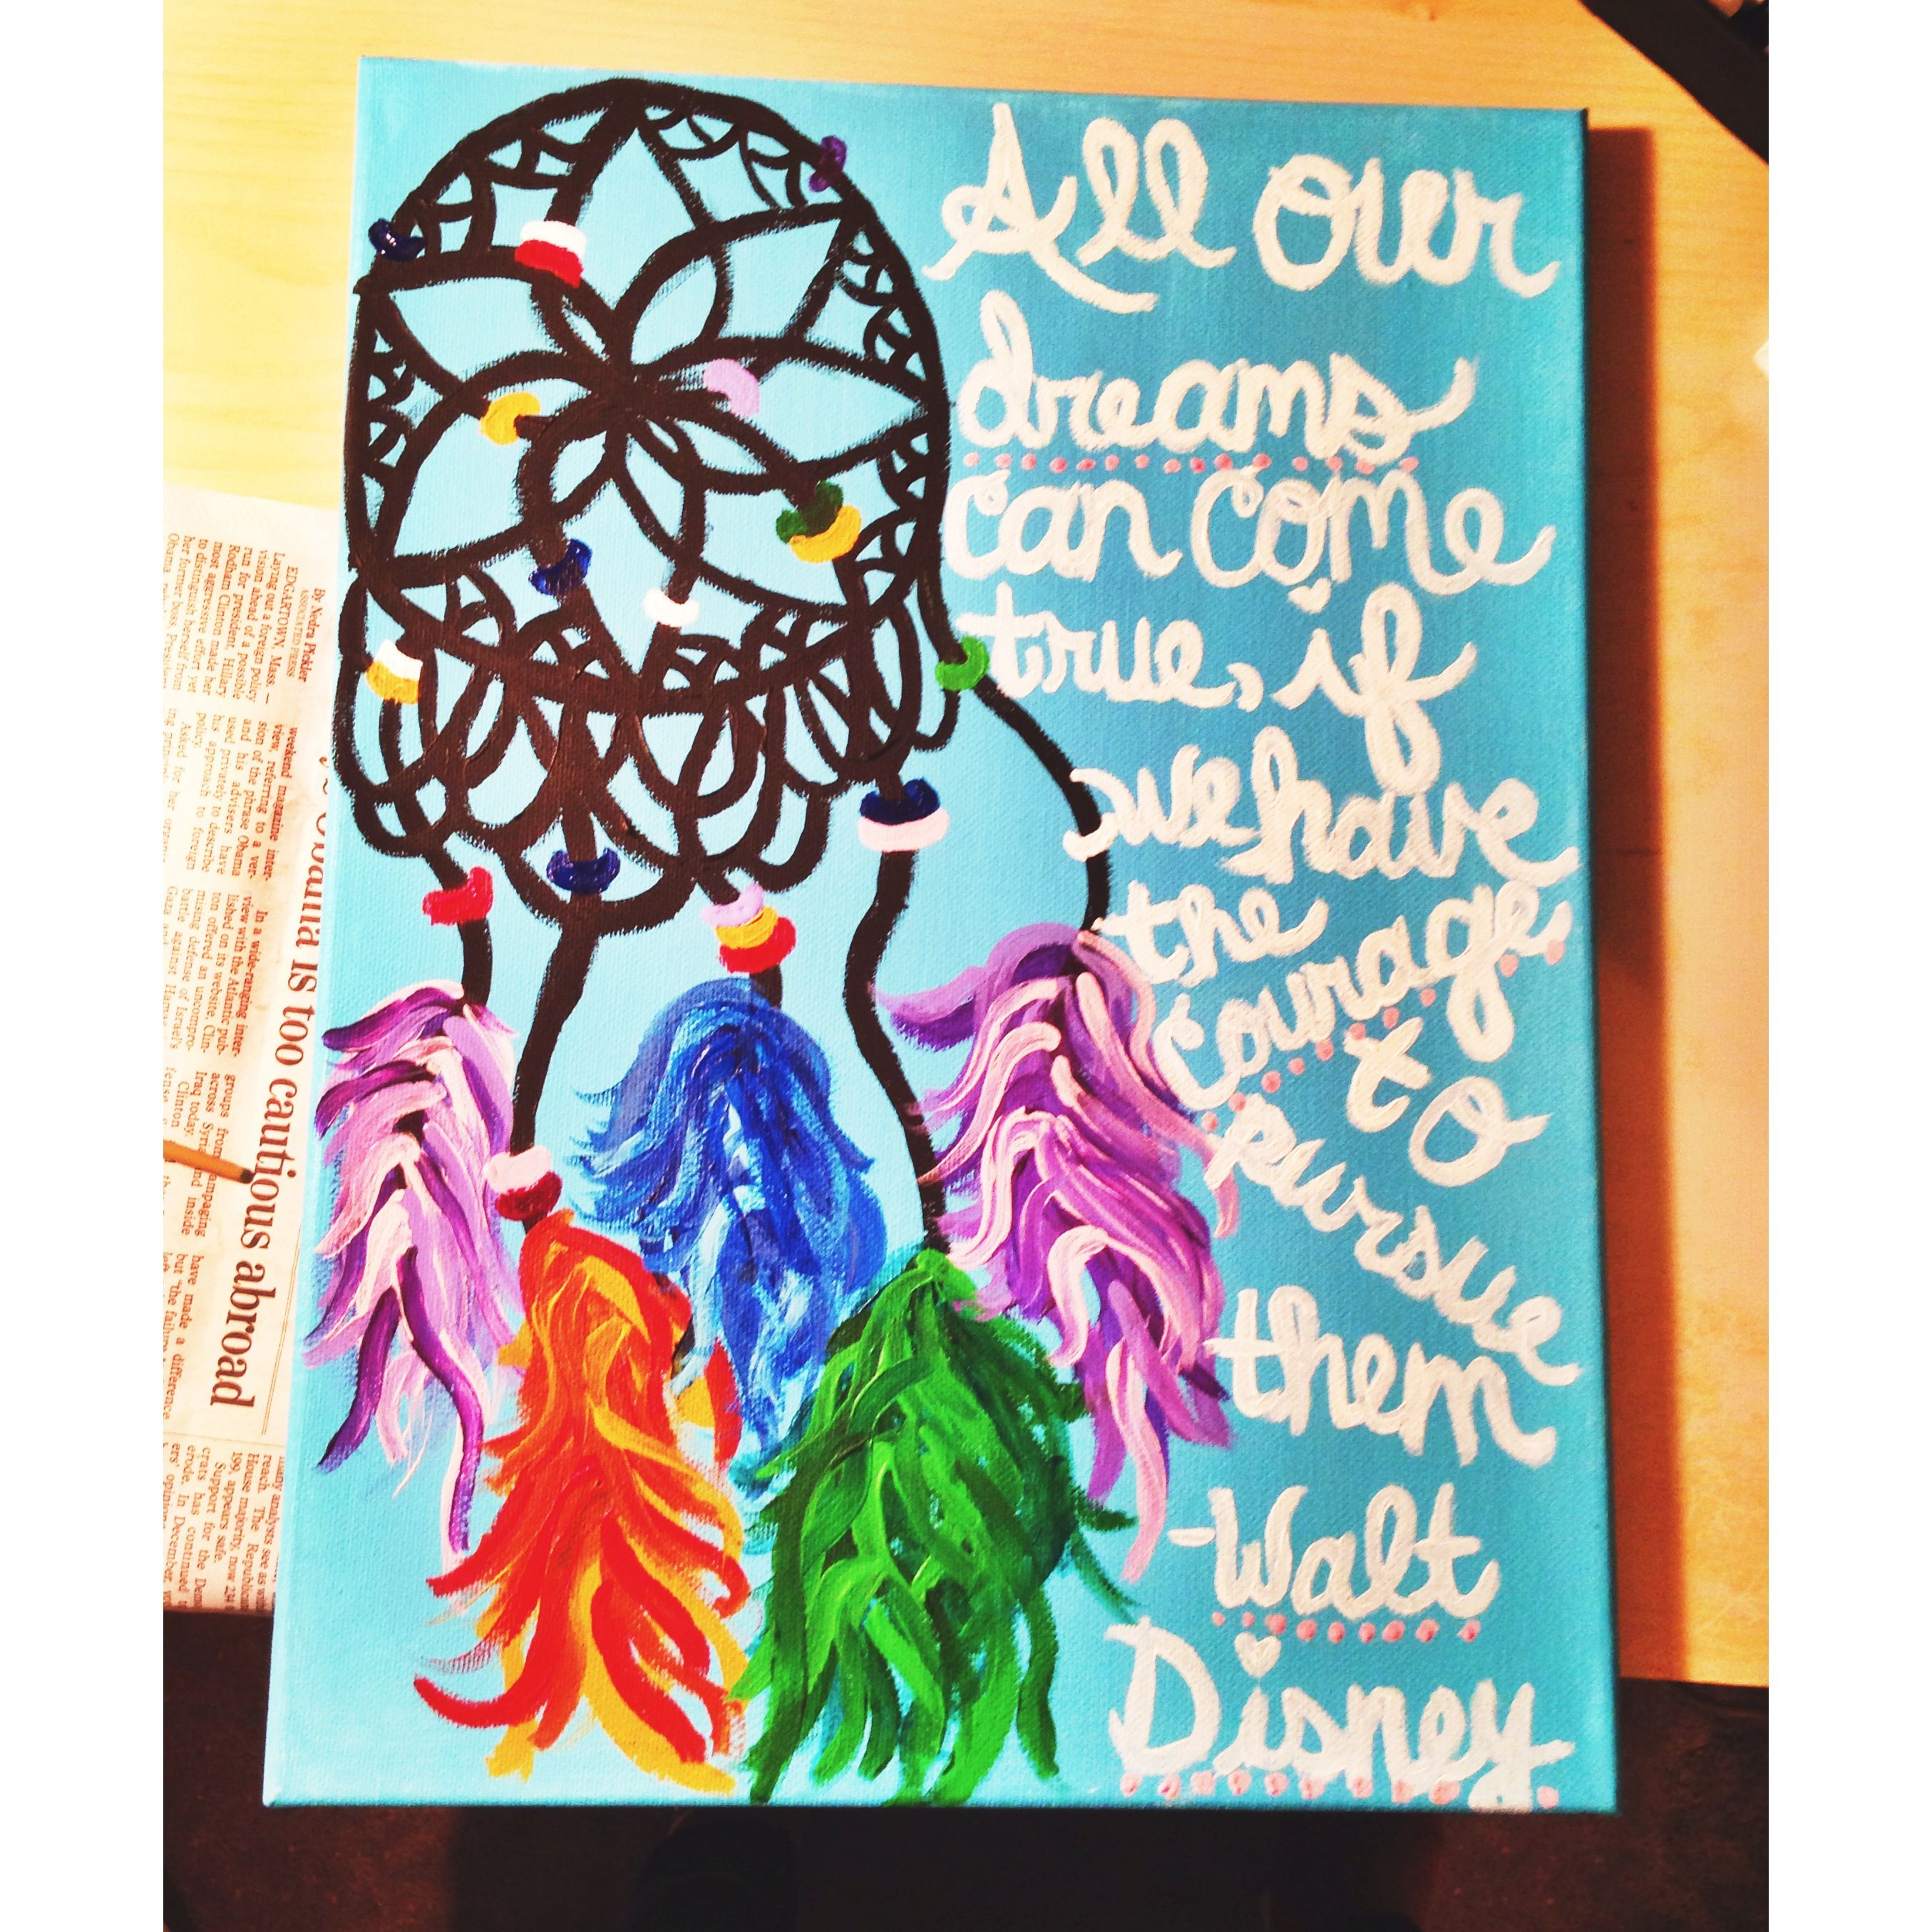 All our dreams can come true, if we have the courage to pursue them ~Walt Disney